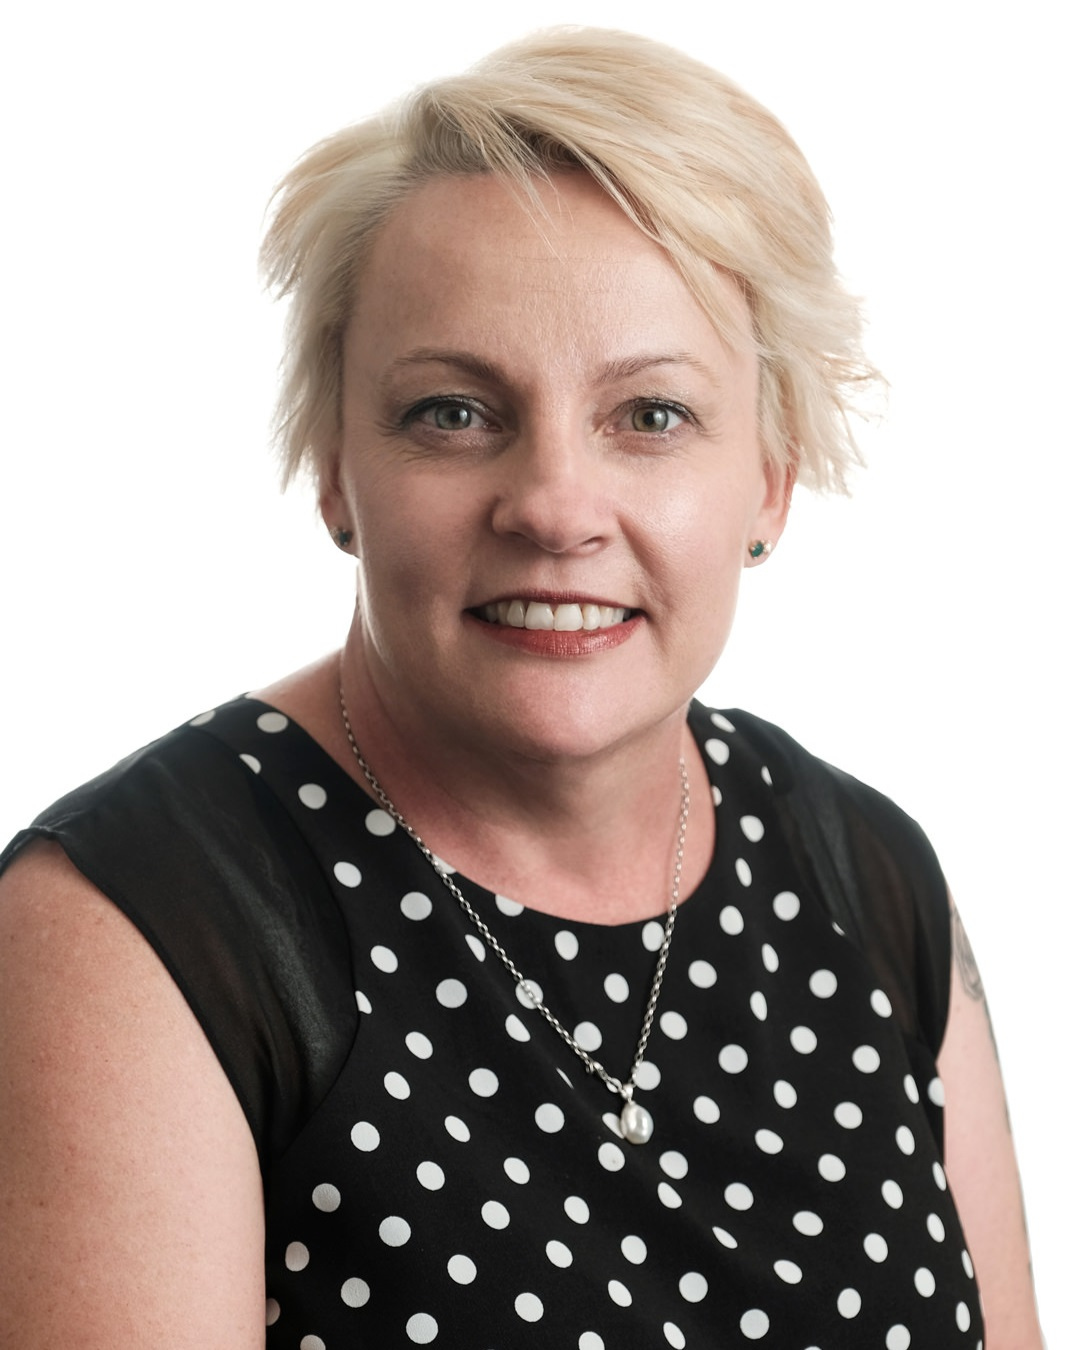 Sandy McKiernan is the Executive Manager Specialist Community Services at Vinnies WA. Commencing in February 2018, her role oversees the strategic and operational direction of Vinnies Mental Health, Homelessness and Housing Services. Prior to working with Vinnies WA, Sandy was Director of Cancer Information and Support Services at Cancer Council WA for 9 years and has more than 8 years' experience on membership based boards both in WA and nationally in the cancer sector. Sandy is a graduate of the Australian Institute of Company Directors and is committed to improving outcomes for individuals through empowerment and proactive community engagement.